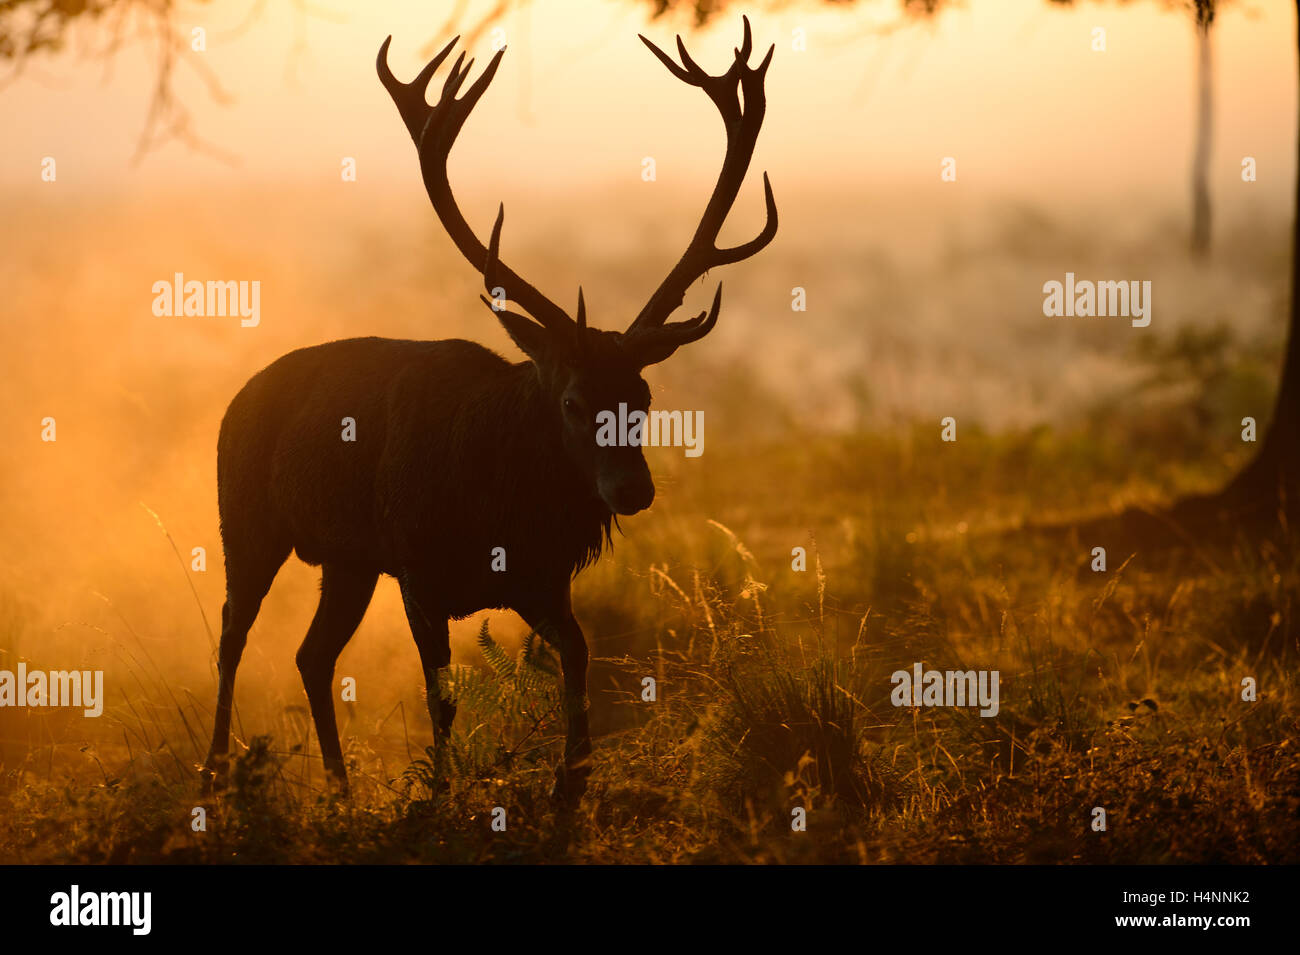 Red deer stag walking in sunlight on a misty morning. His antlers form a shadow in the fog in front of his head. - Stock Image